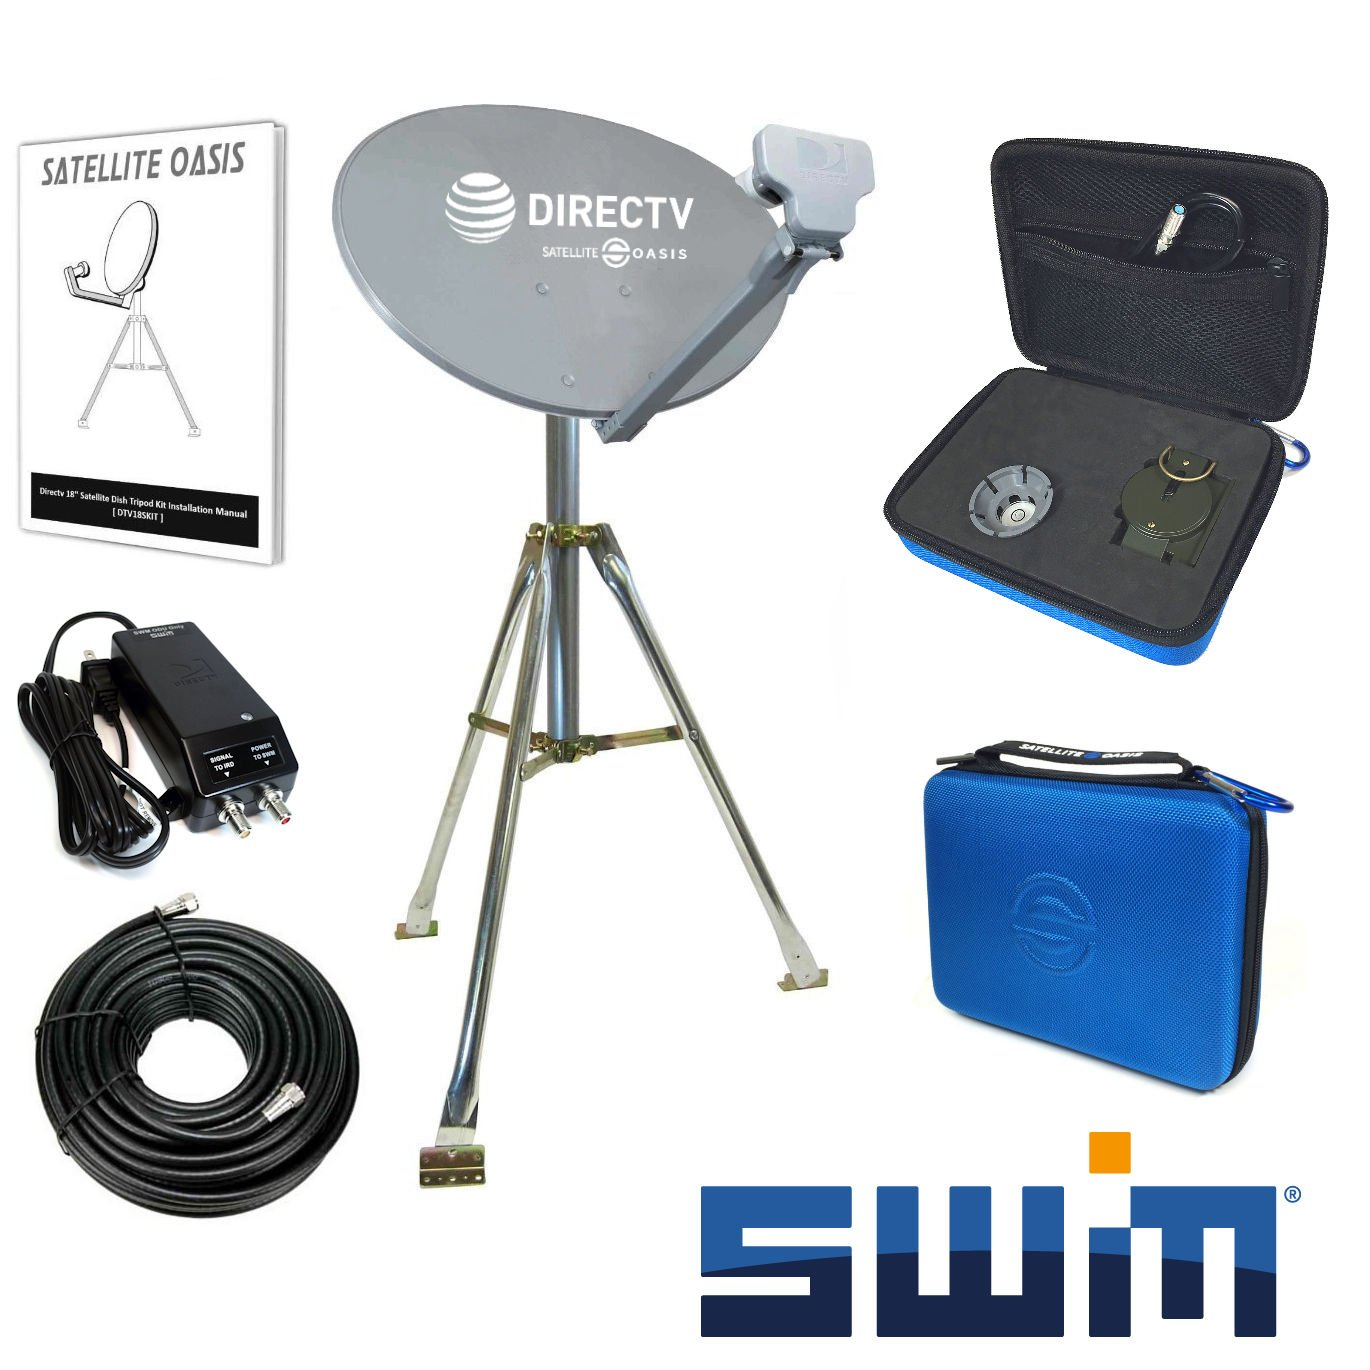 DIRECTV SWiM Mobile RV Portable Satellite Dish Tripod Kit SWM SL3S by Satellite Oasis